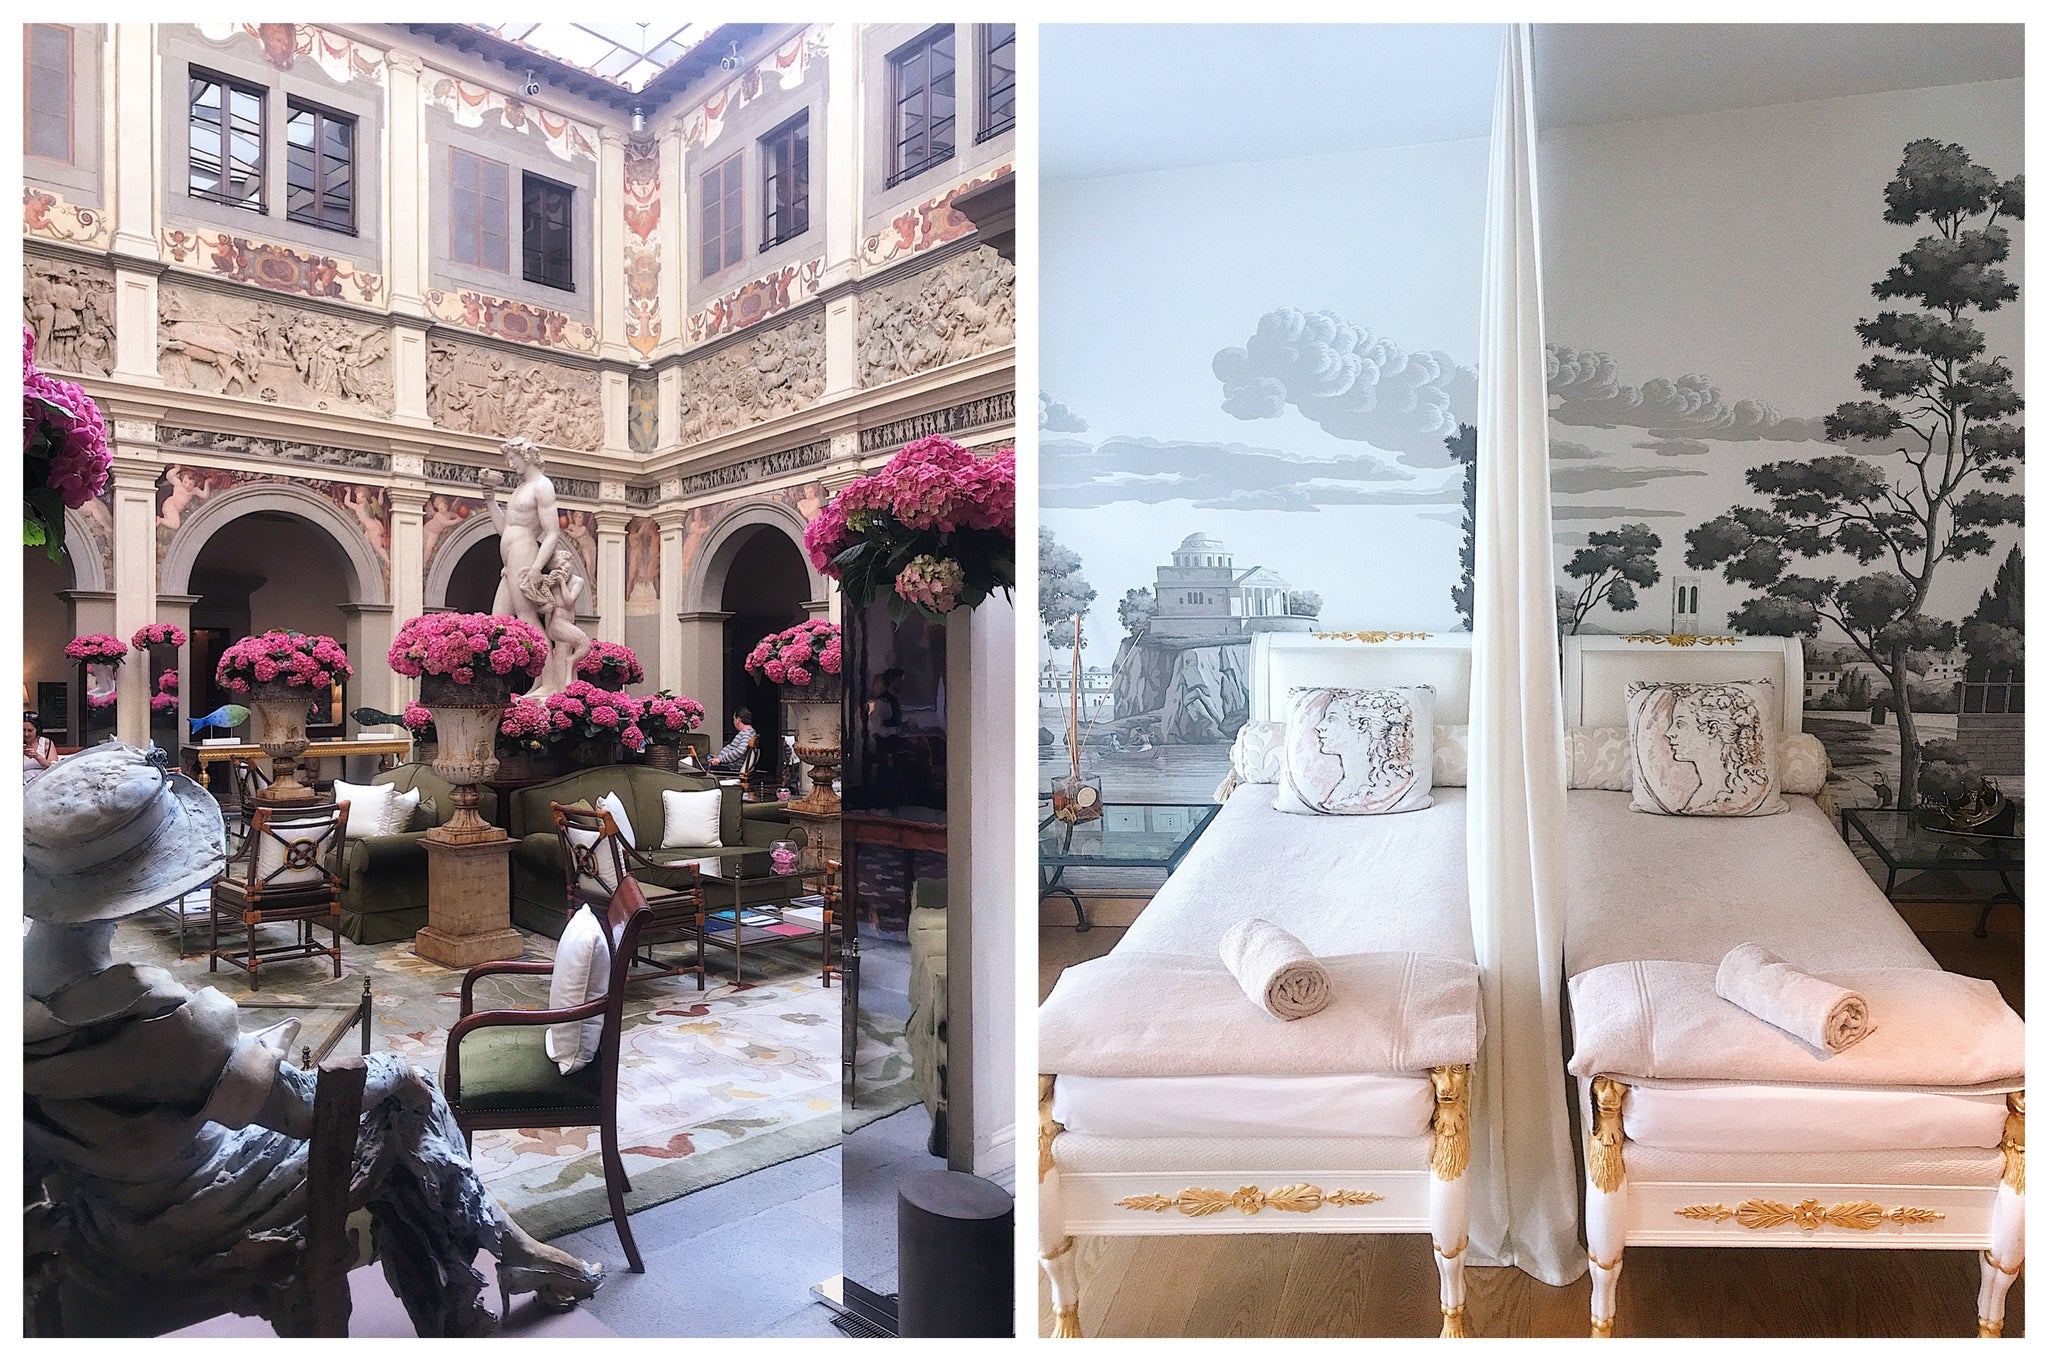 Four Season Hotel, Florence Italy Katie Dean travel guide